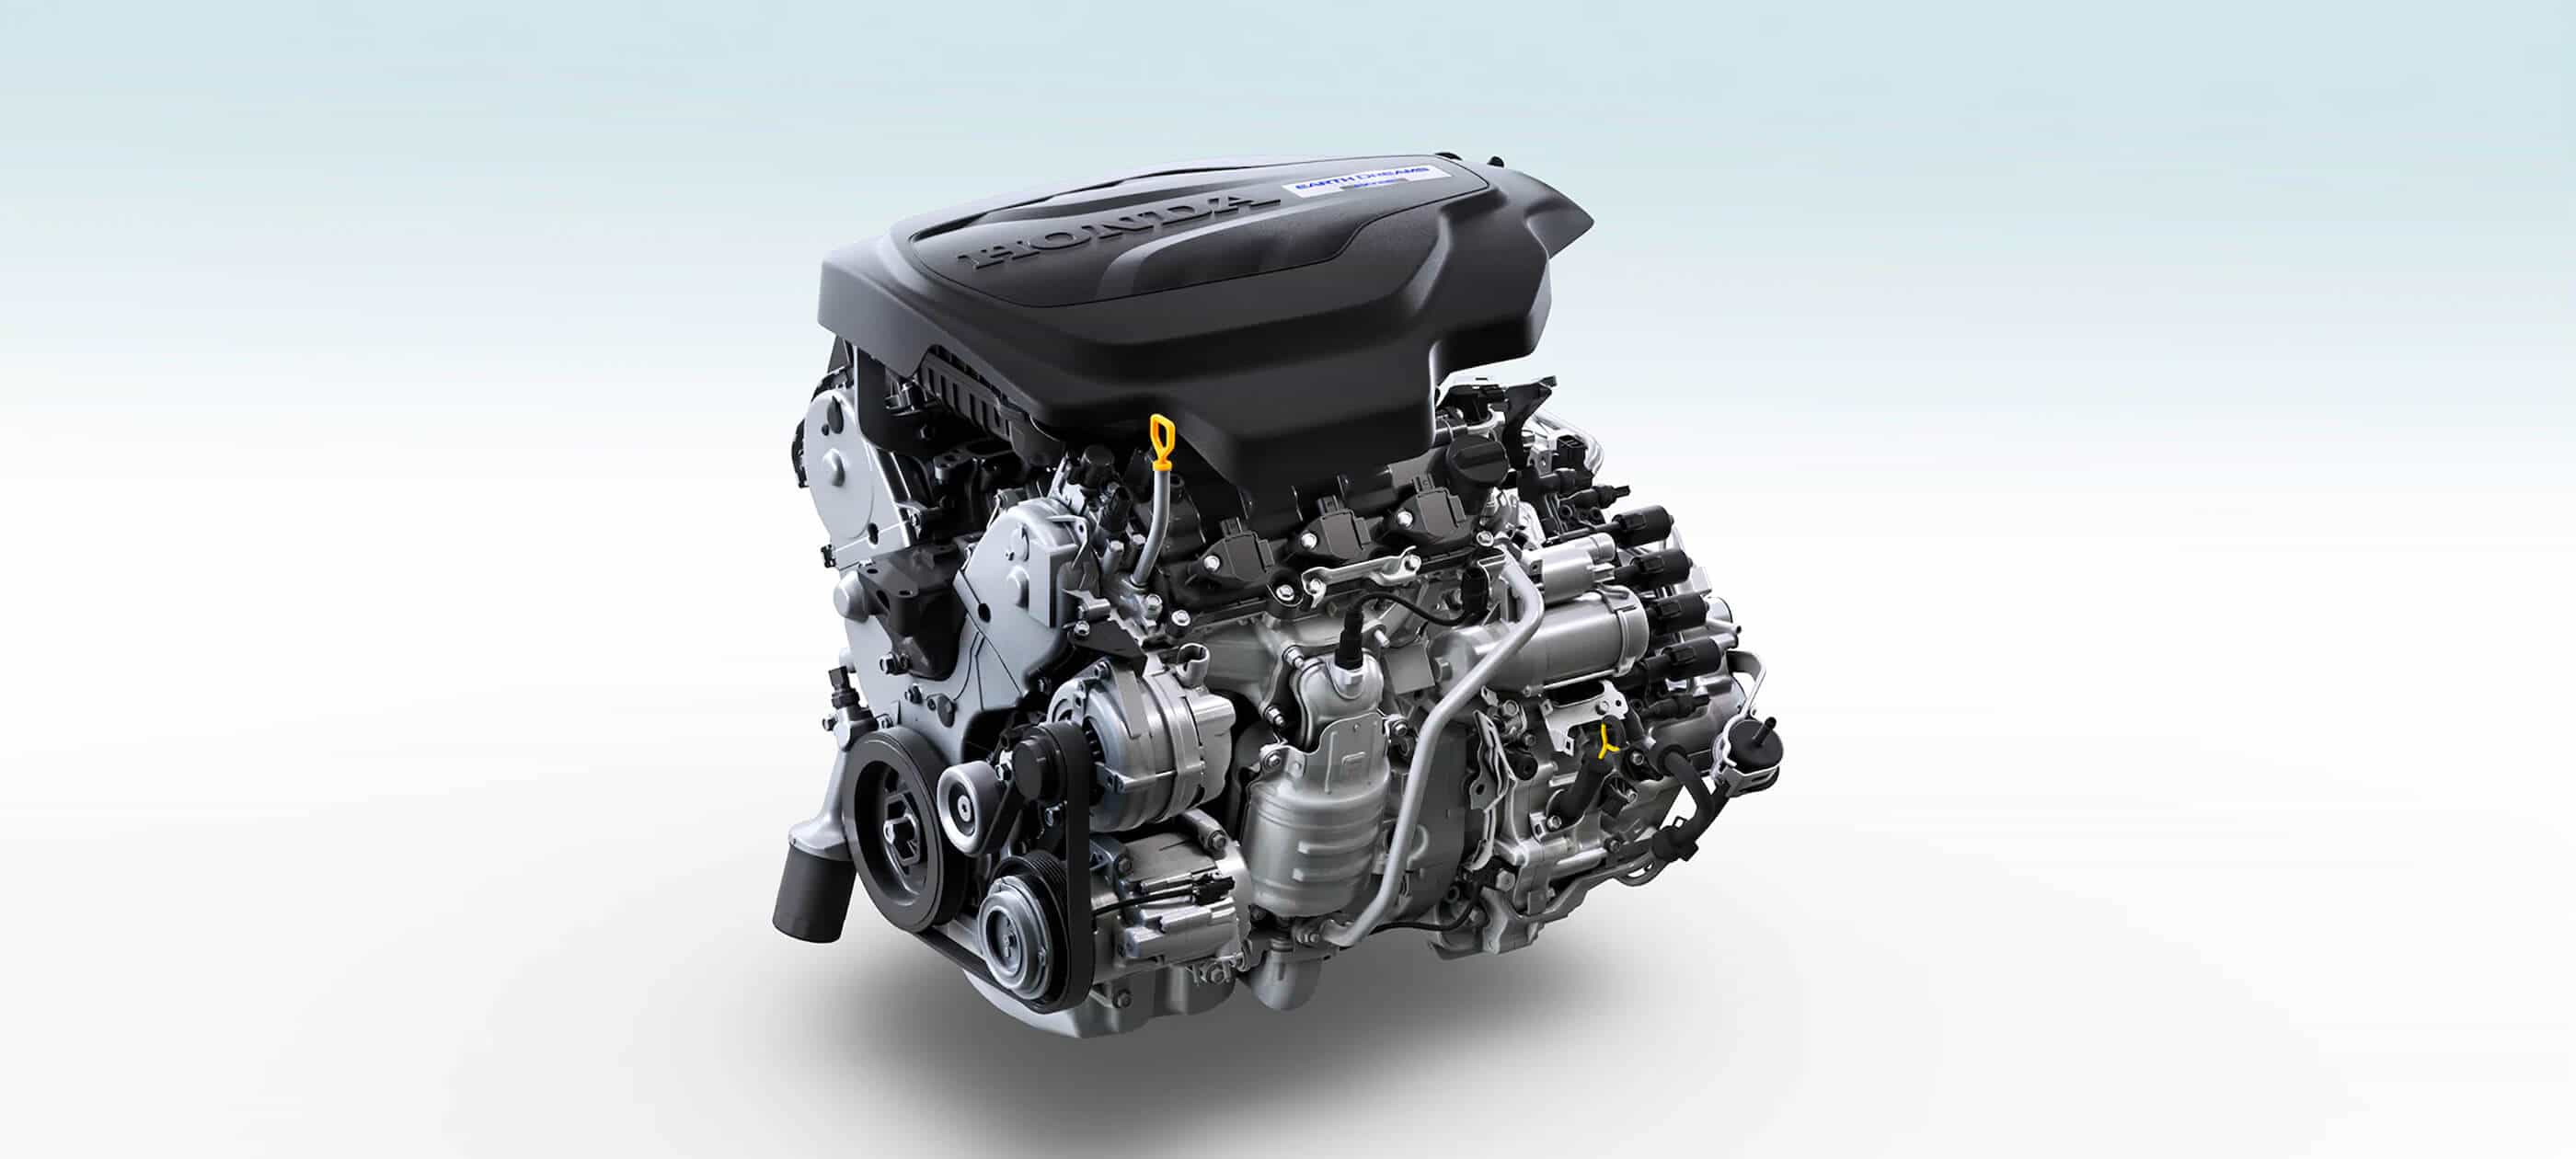 280-hp V-6 Engine